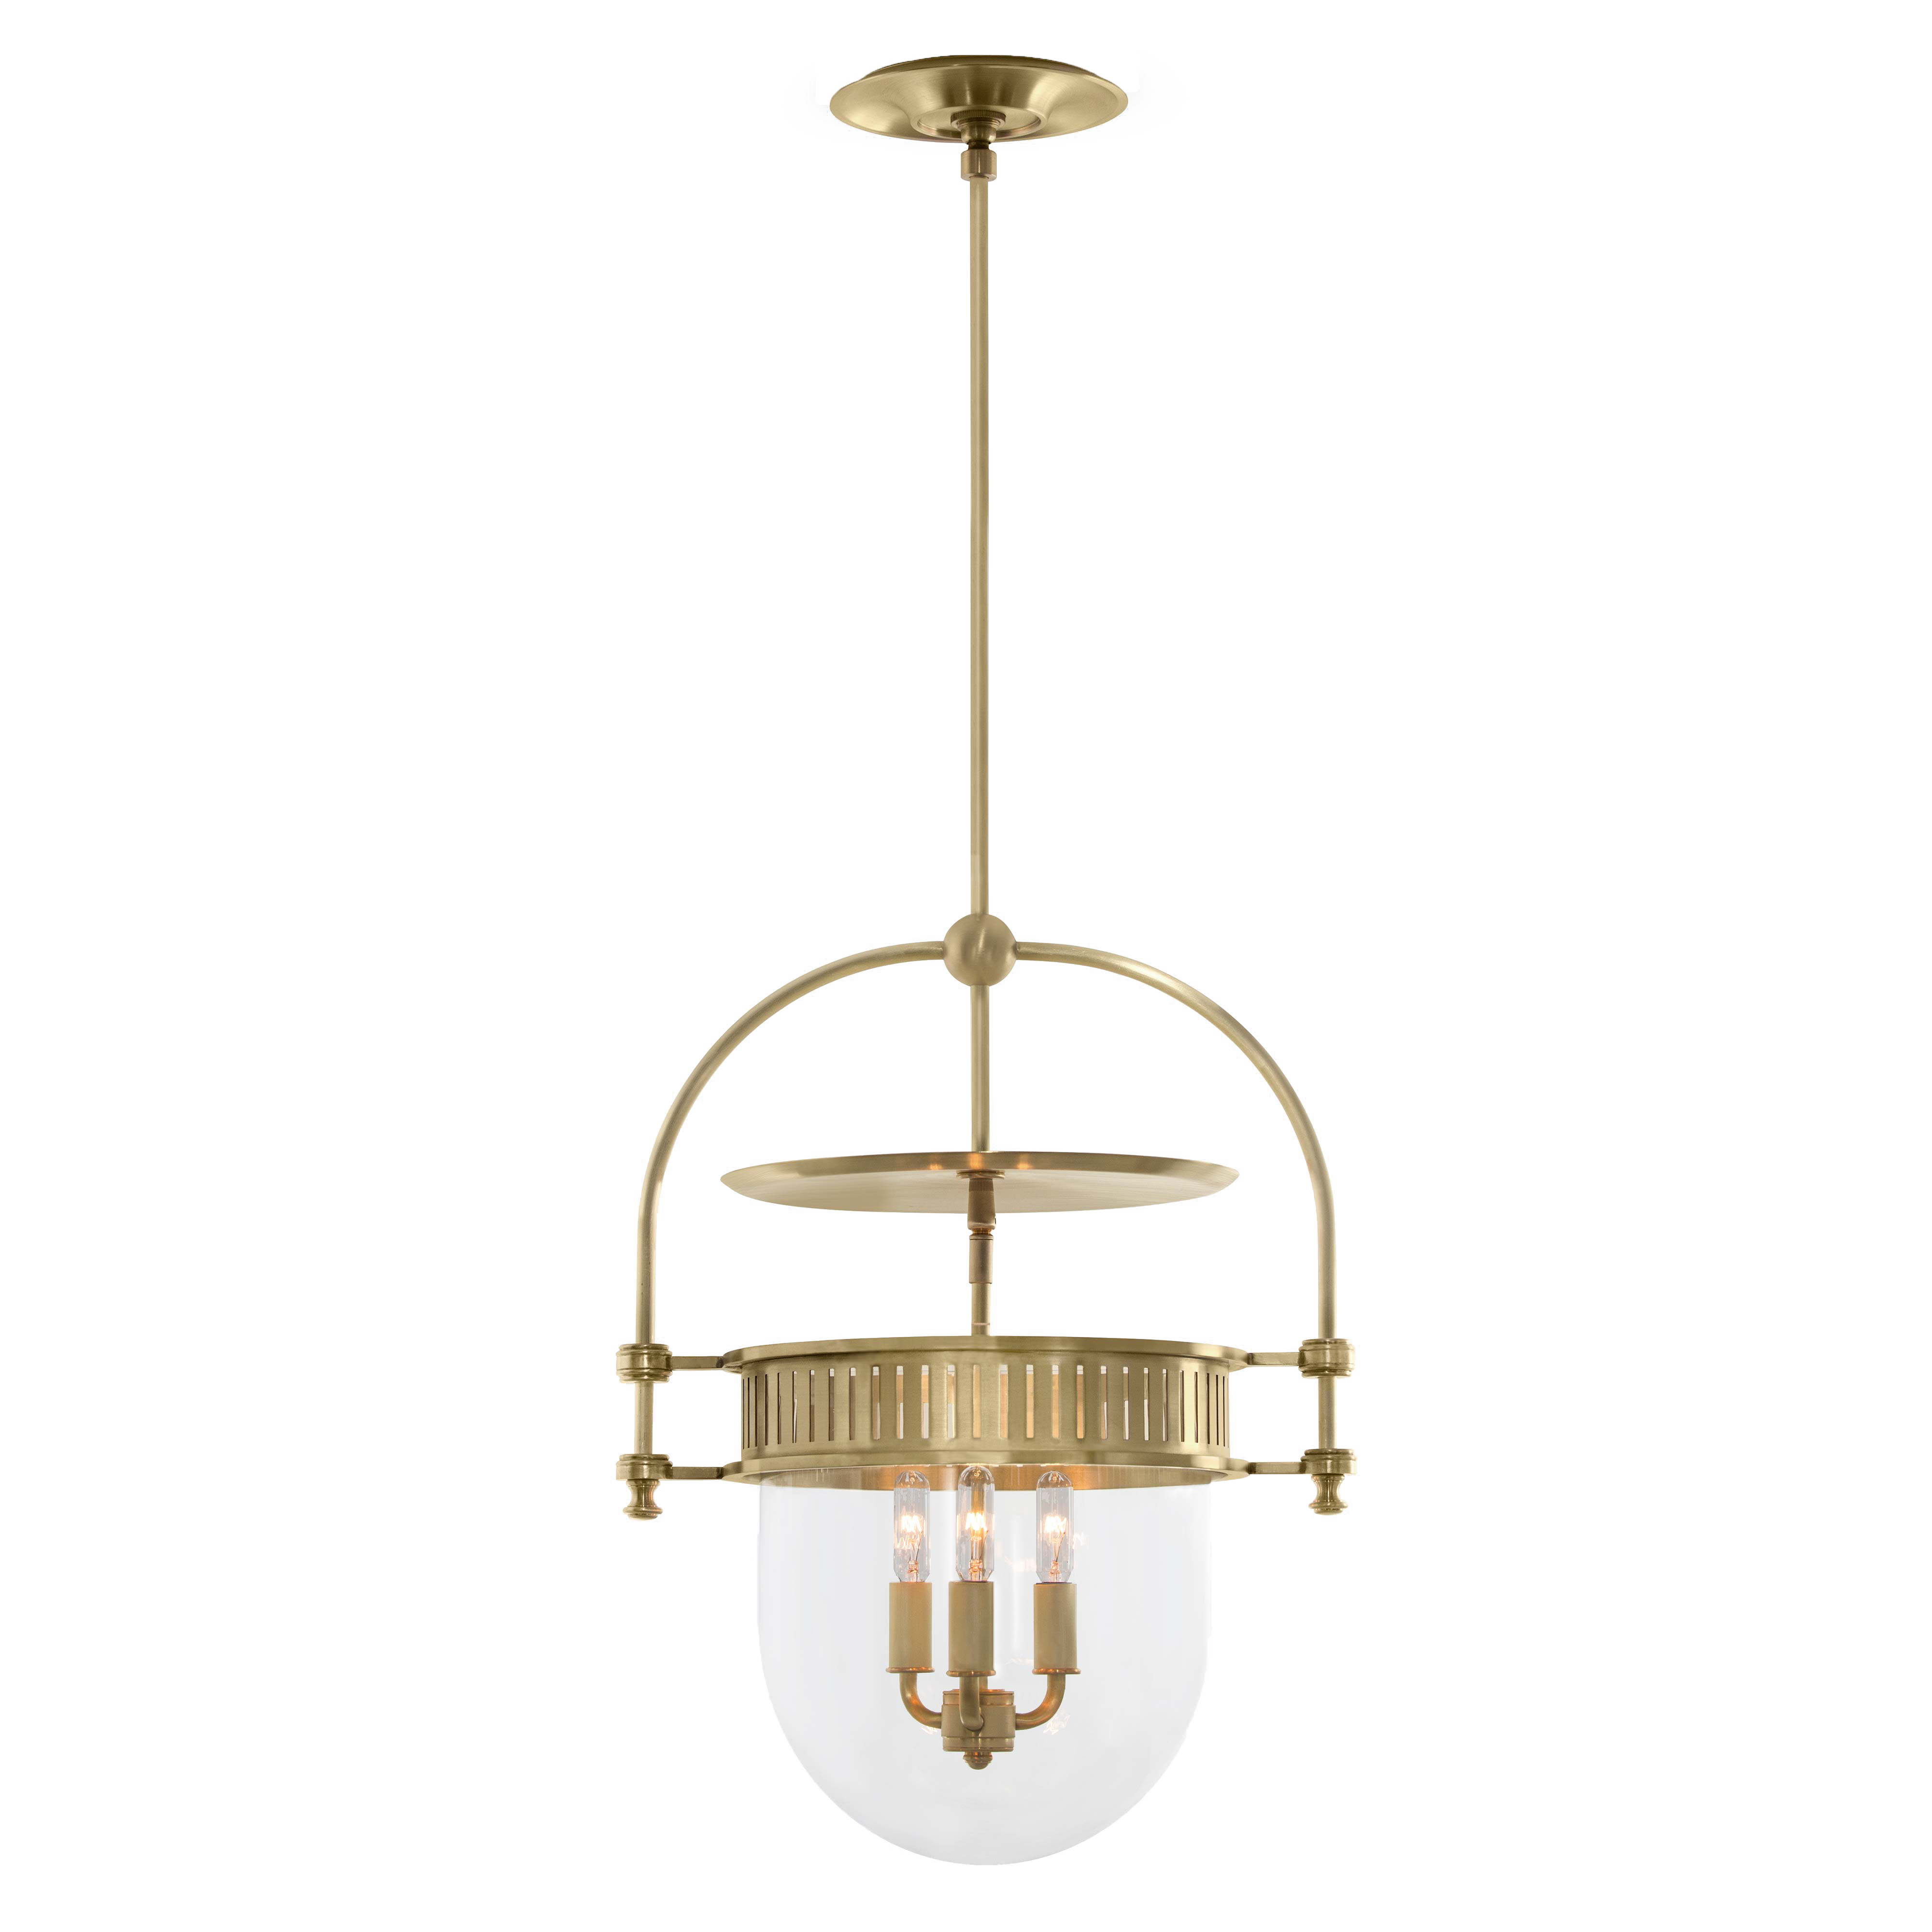 the urban electric company s dover bell shown in hewn brass finish with clear glass urban electric period lighting small lanterns